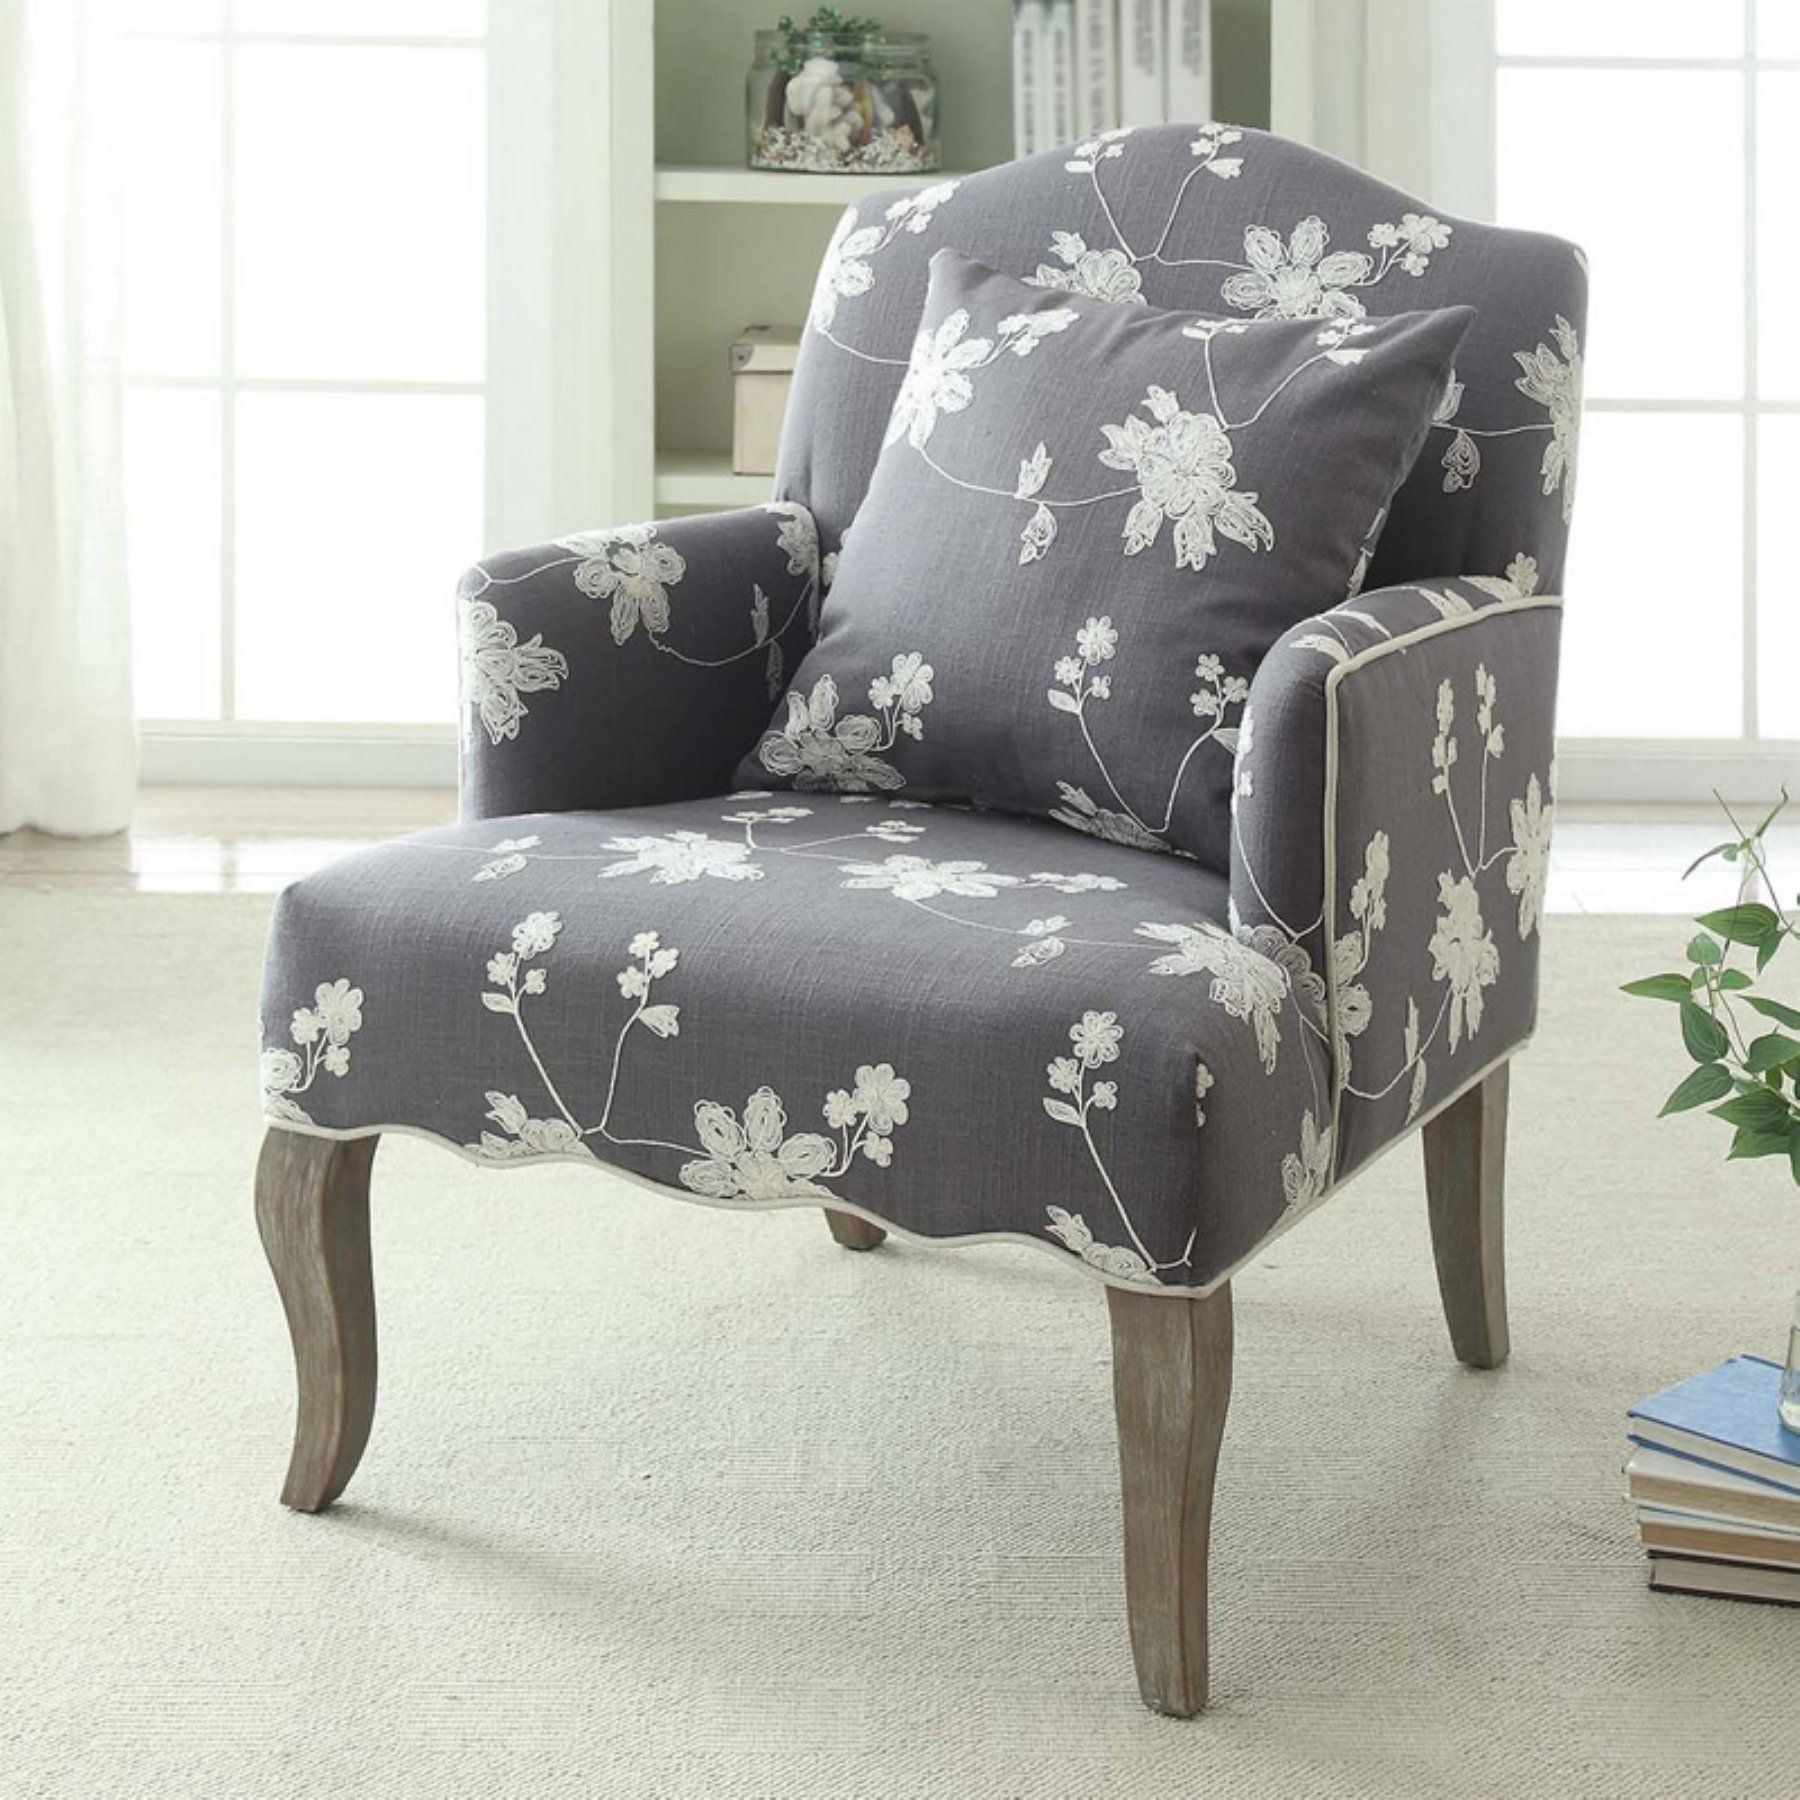 Pleasing Linon Floral Arm Chair 368312Gry01U Products Armchair Squirreltailoven Fun Painted Chair Ideas Images Squirreltailovenorg